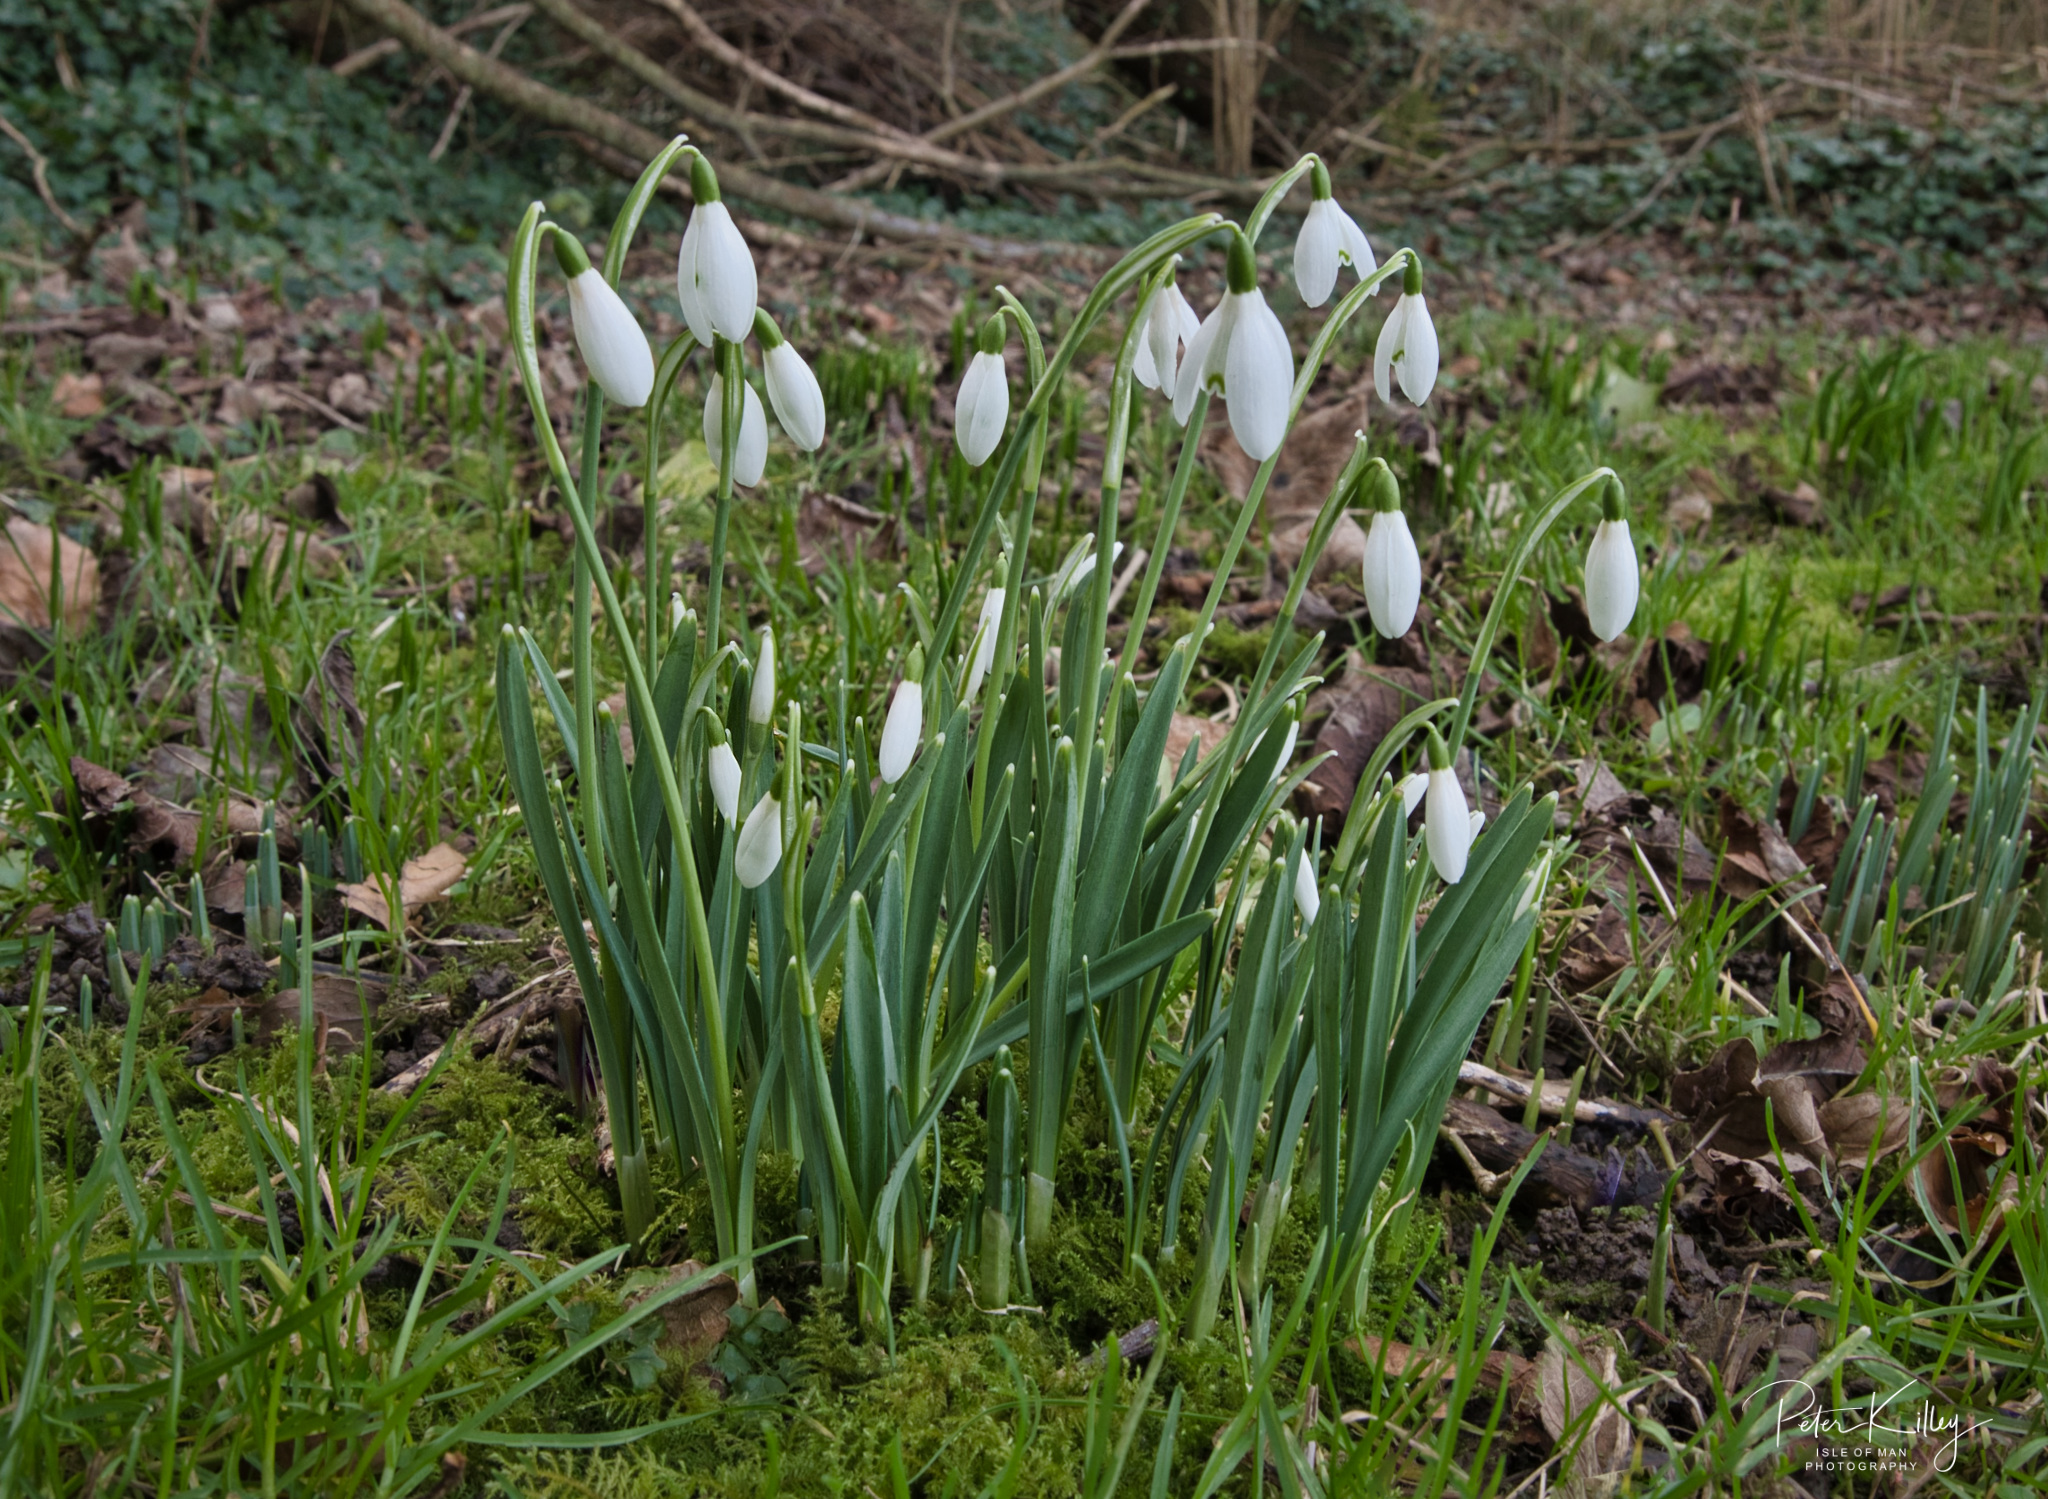 Snowdrops 4th Jan 20, Ballaugh - © Peter Killey - www.manxscenes.com